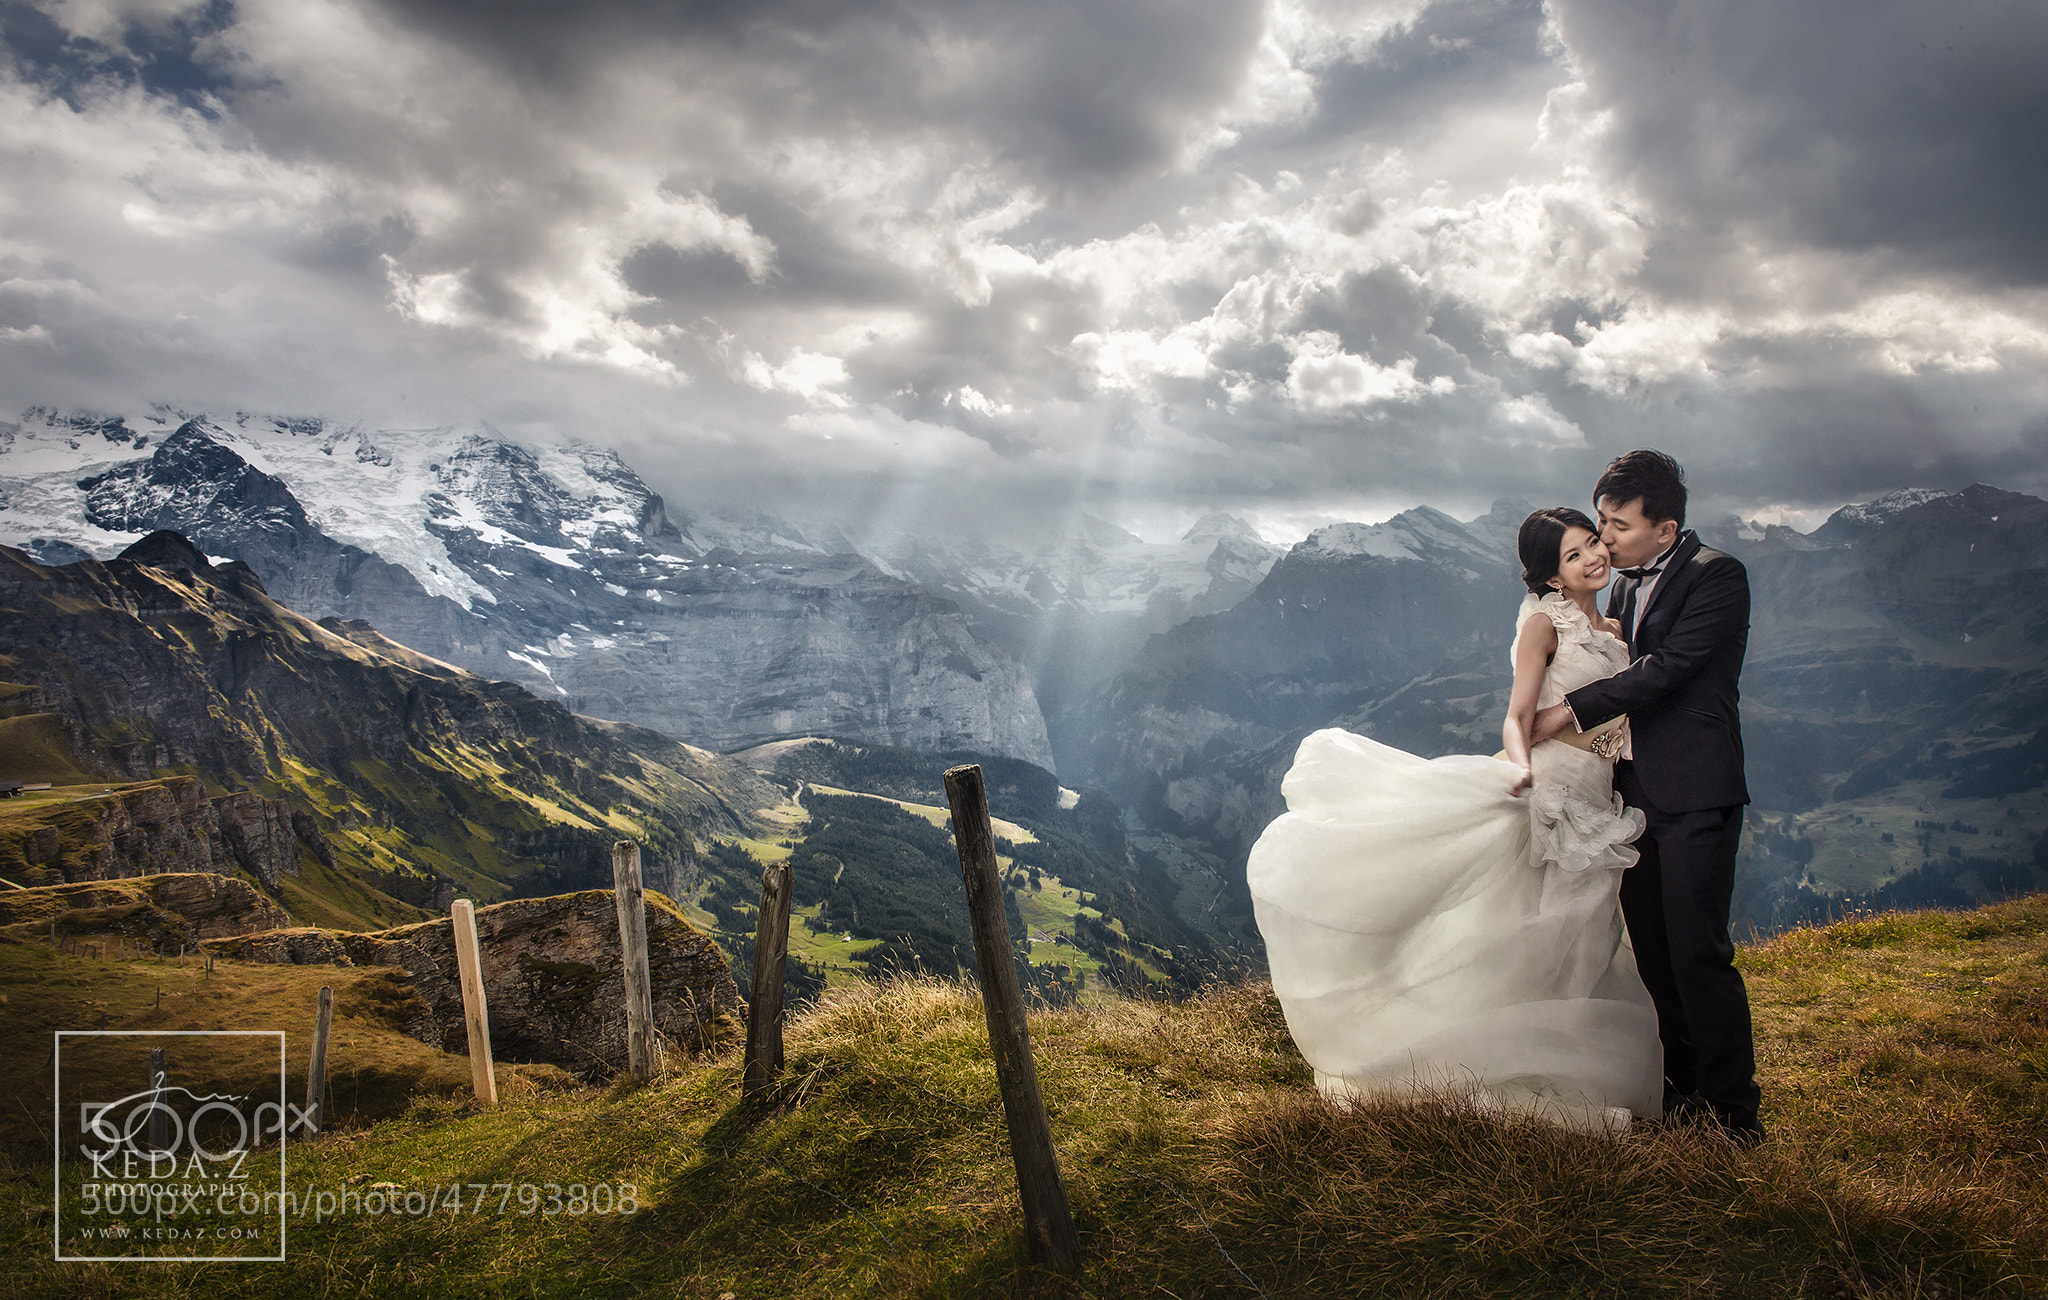 Photograph Journey of love in Switzerland by Keda.Z Feng on 500px